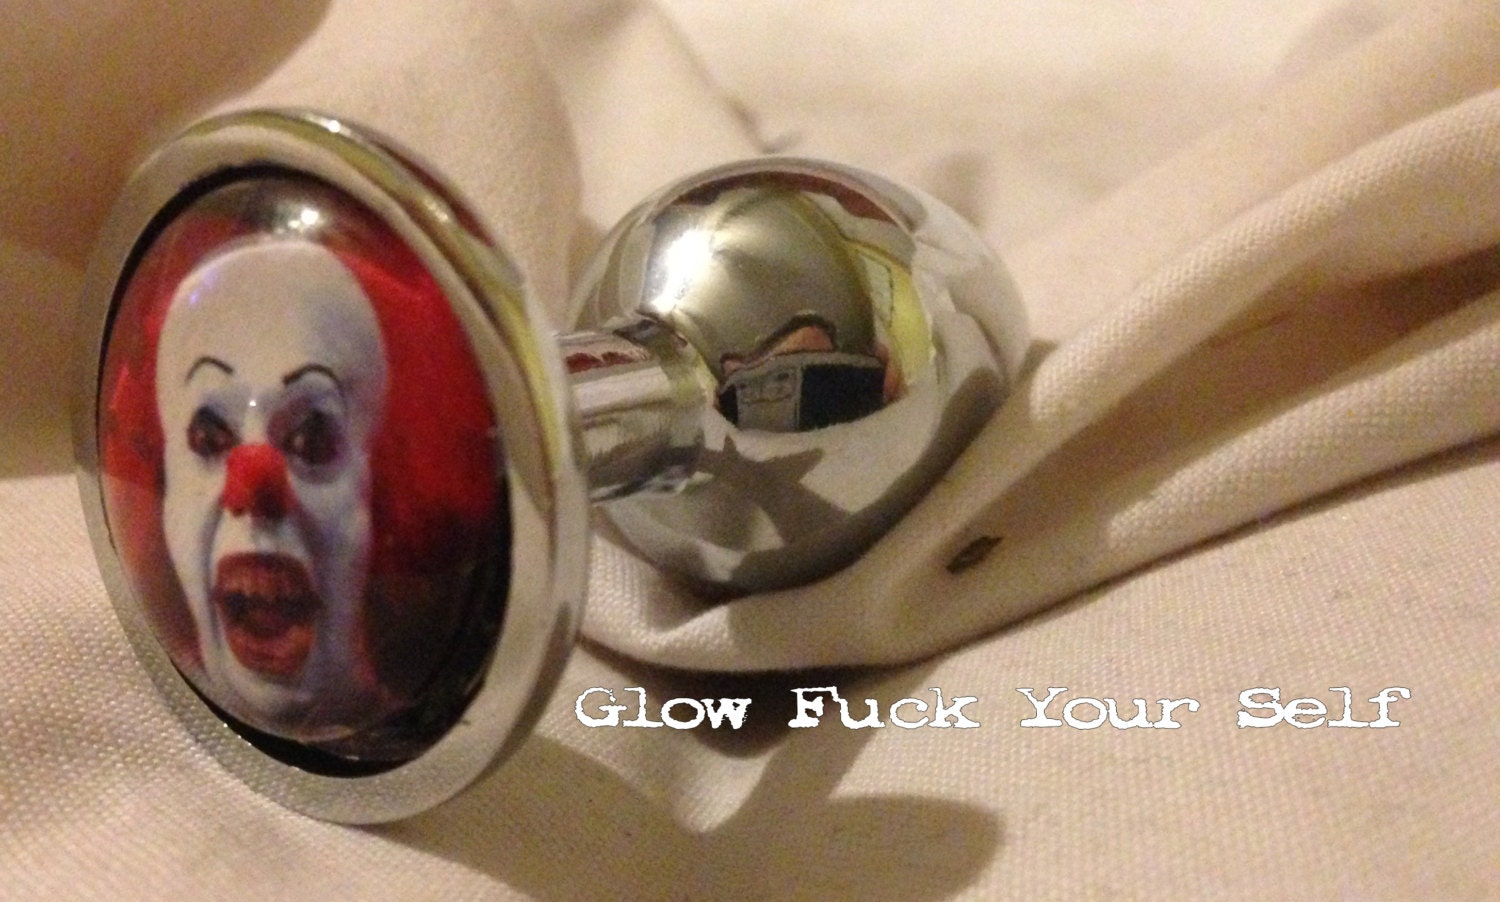 Mature Scary Clown Butt Plug Because Put It In Your Butt-7574